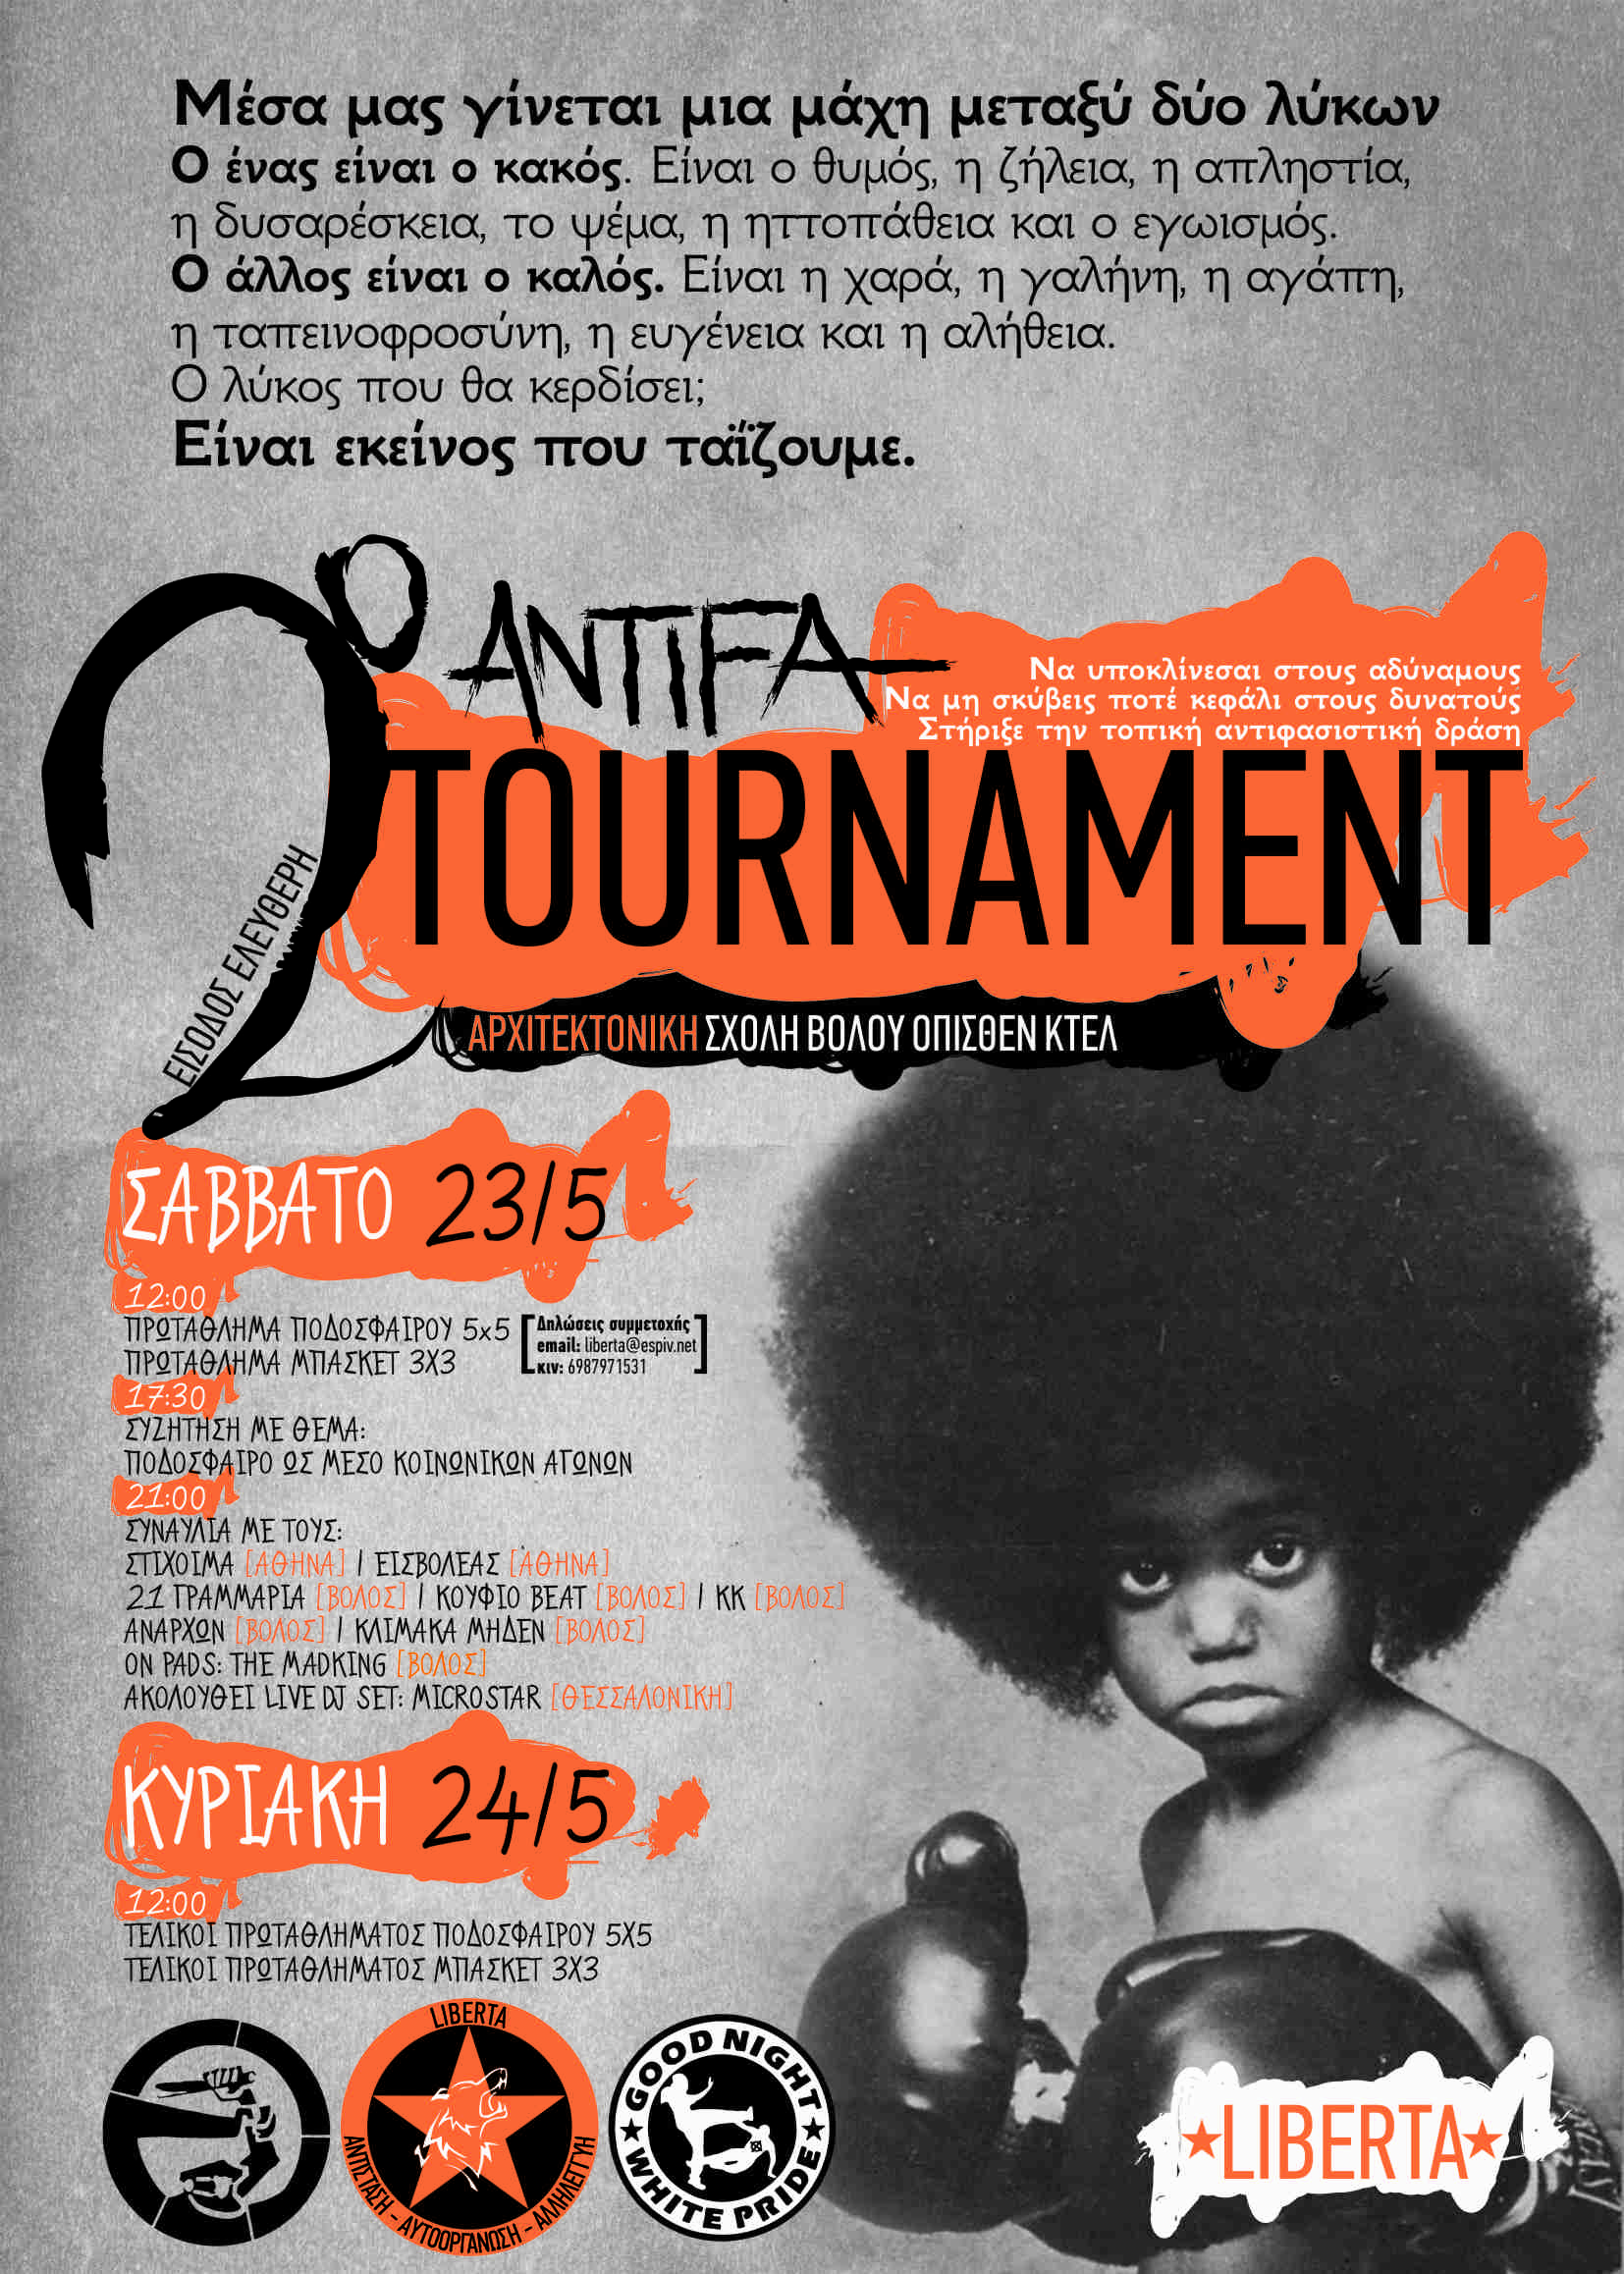 2o antifa tournament